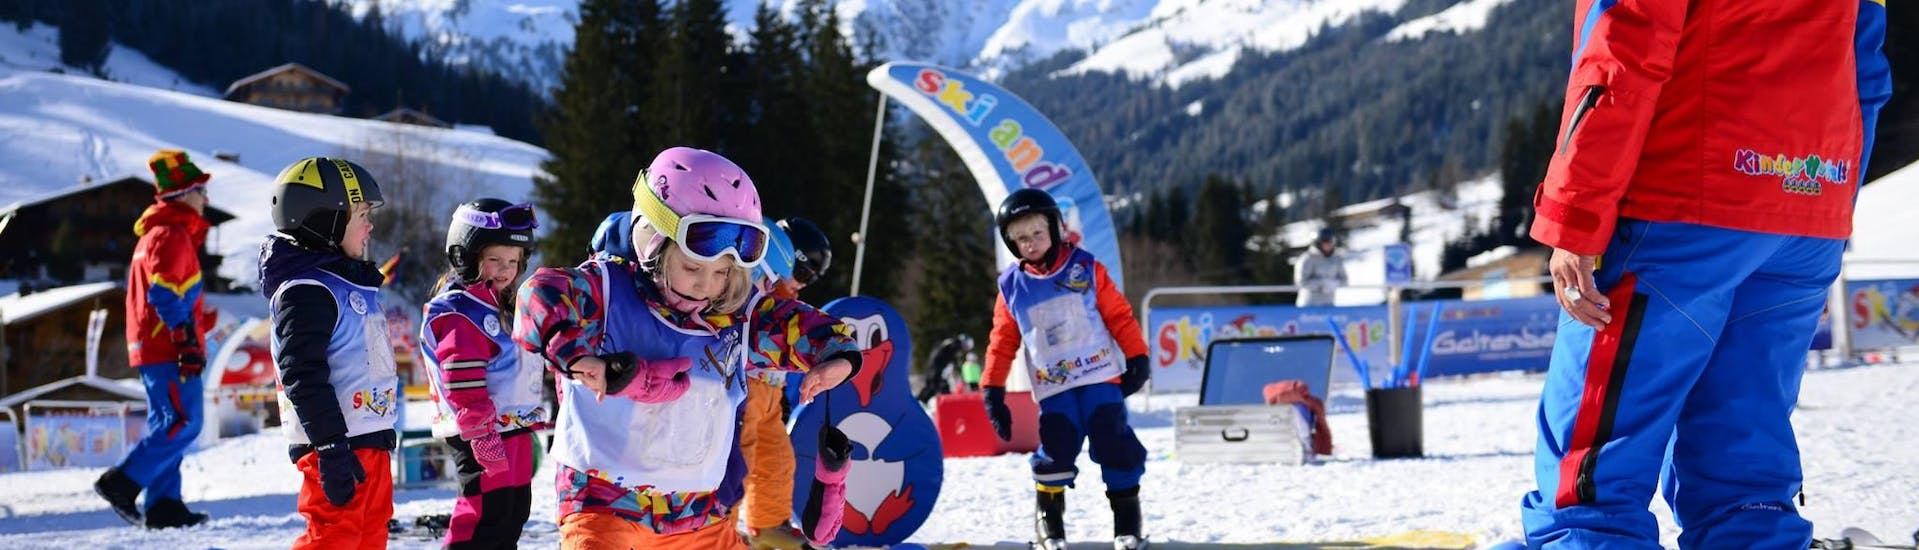 "Kids Ski Lessons ""Bambini"" (3-4 y.) for Beginners"